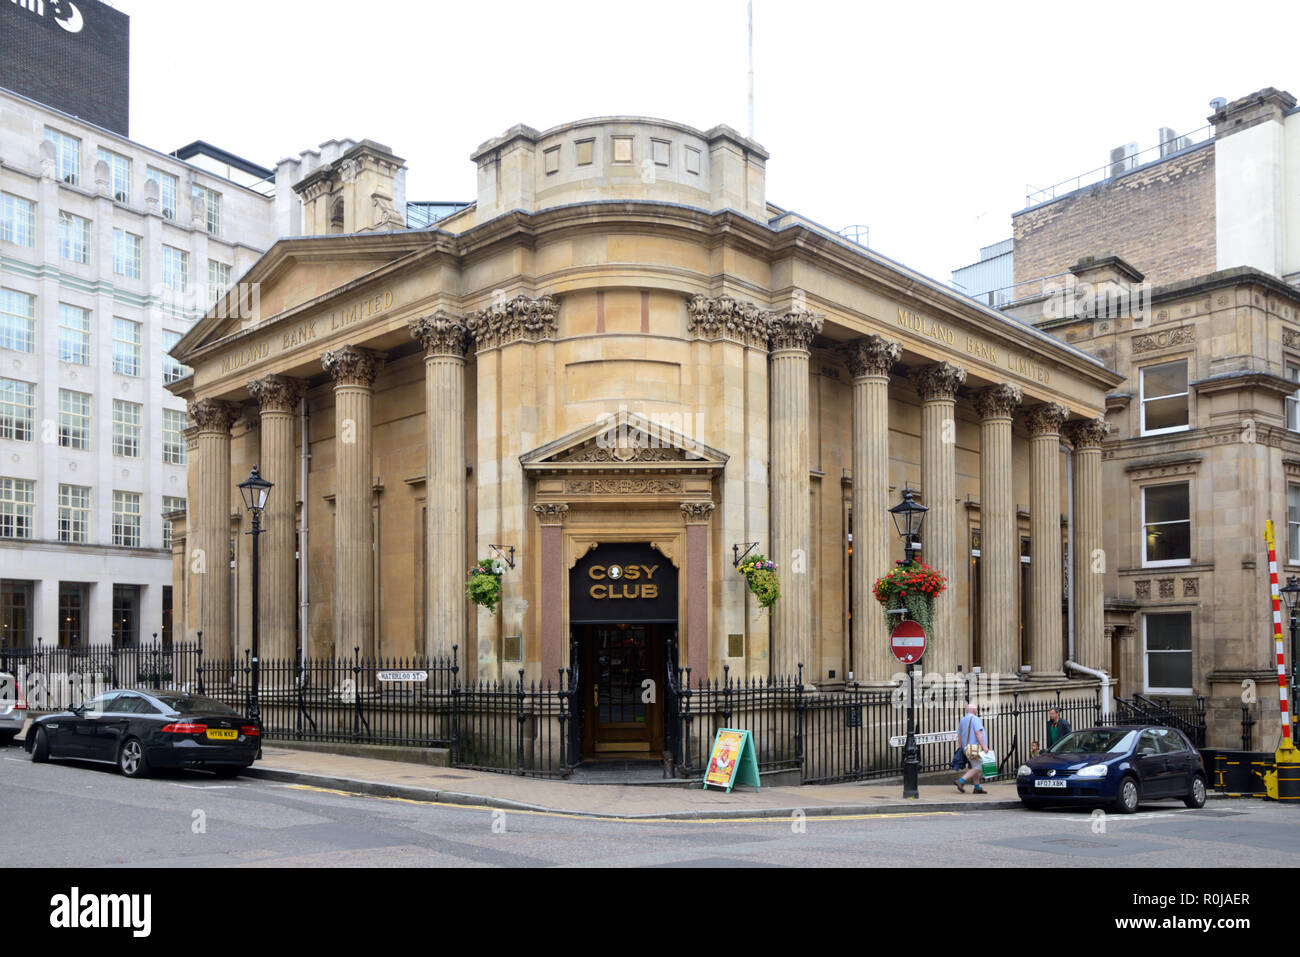 Cosy Club Restaurant in Converted Former Midland Bank, a Neo-Classical Victorian or c19th Building, in Central Birmingham UK - Stock Image